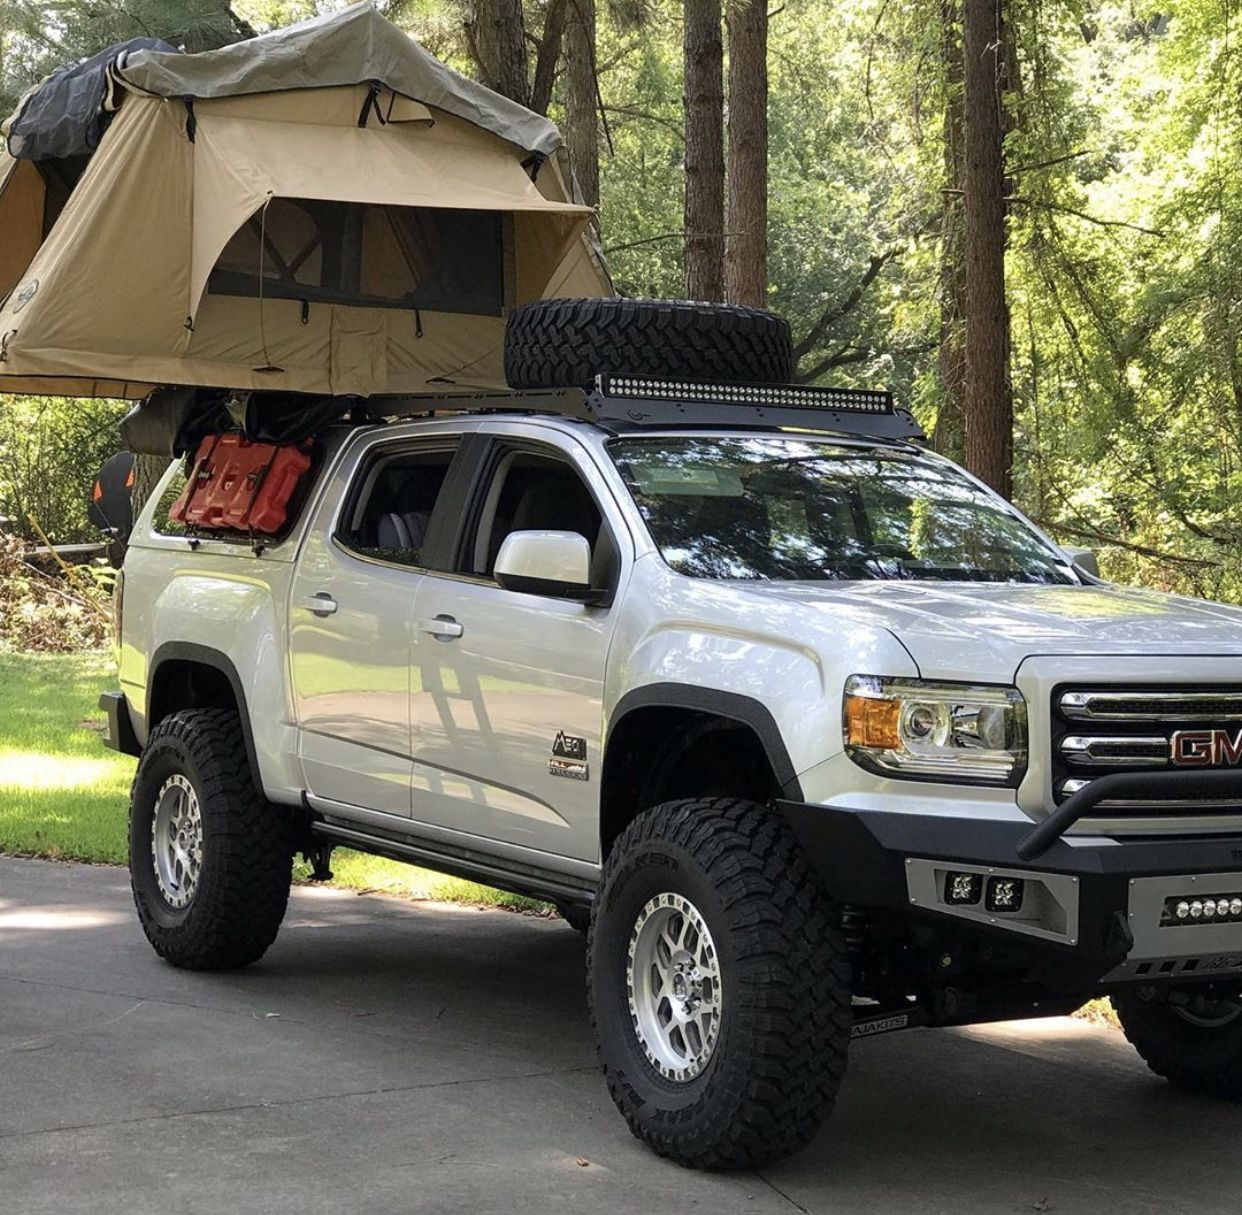 2017 Silver Gmc Canyon Engine Duramax Diesel Suspension Bds 5 Coil Over Conversion Kit Baja Kit Pre Runner Kit Lockers Facto Gmc Canyon Roof Top Tent Gmc